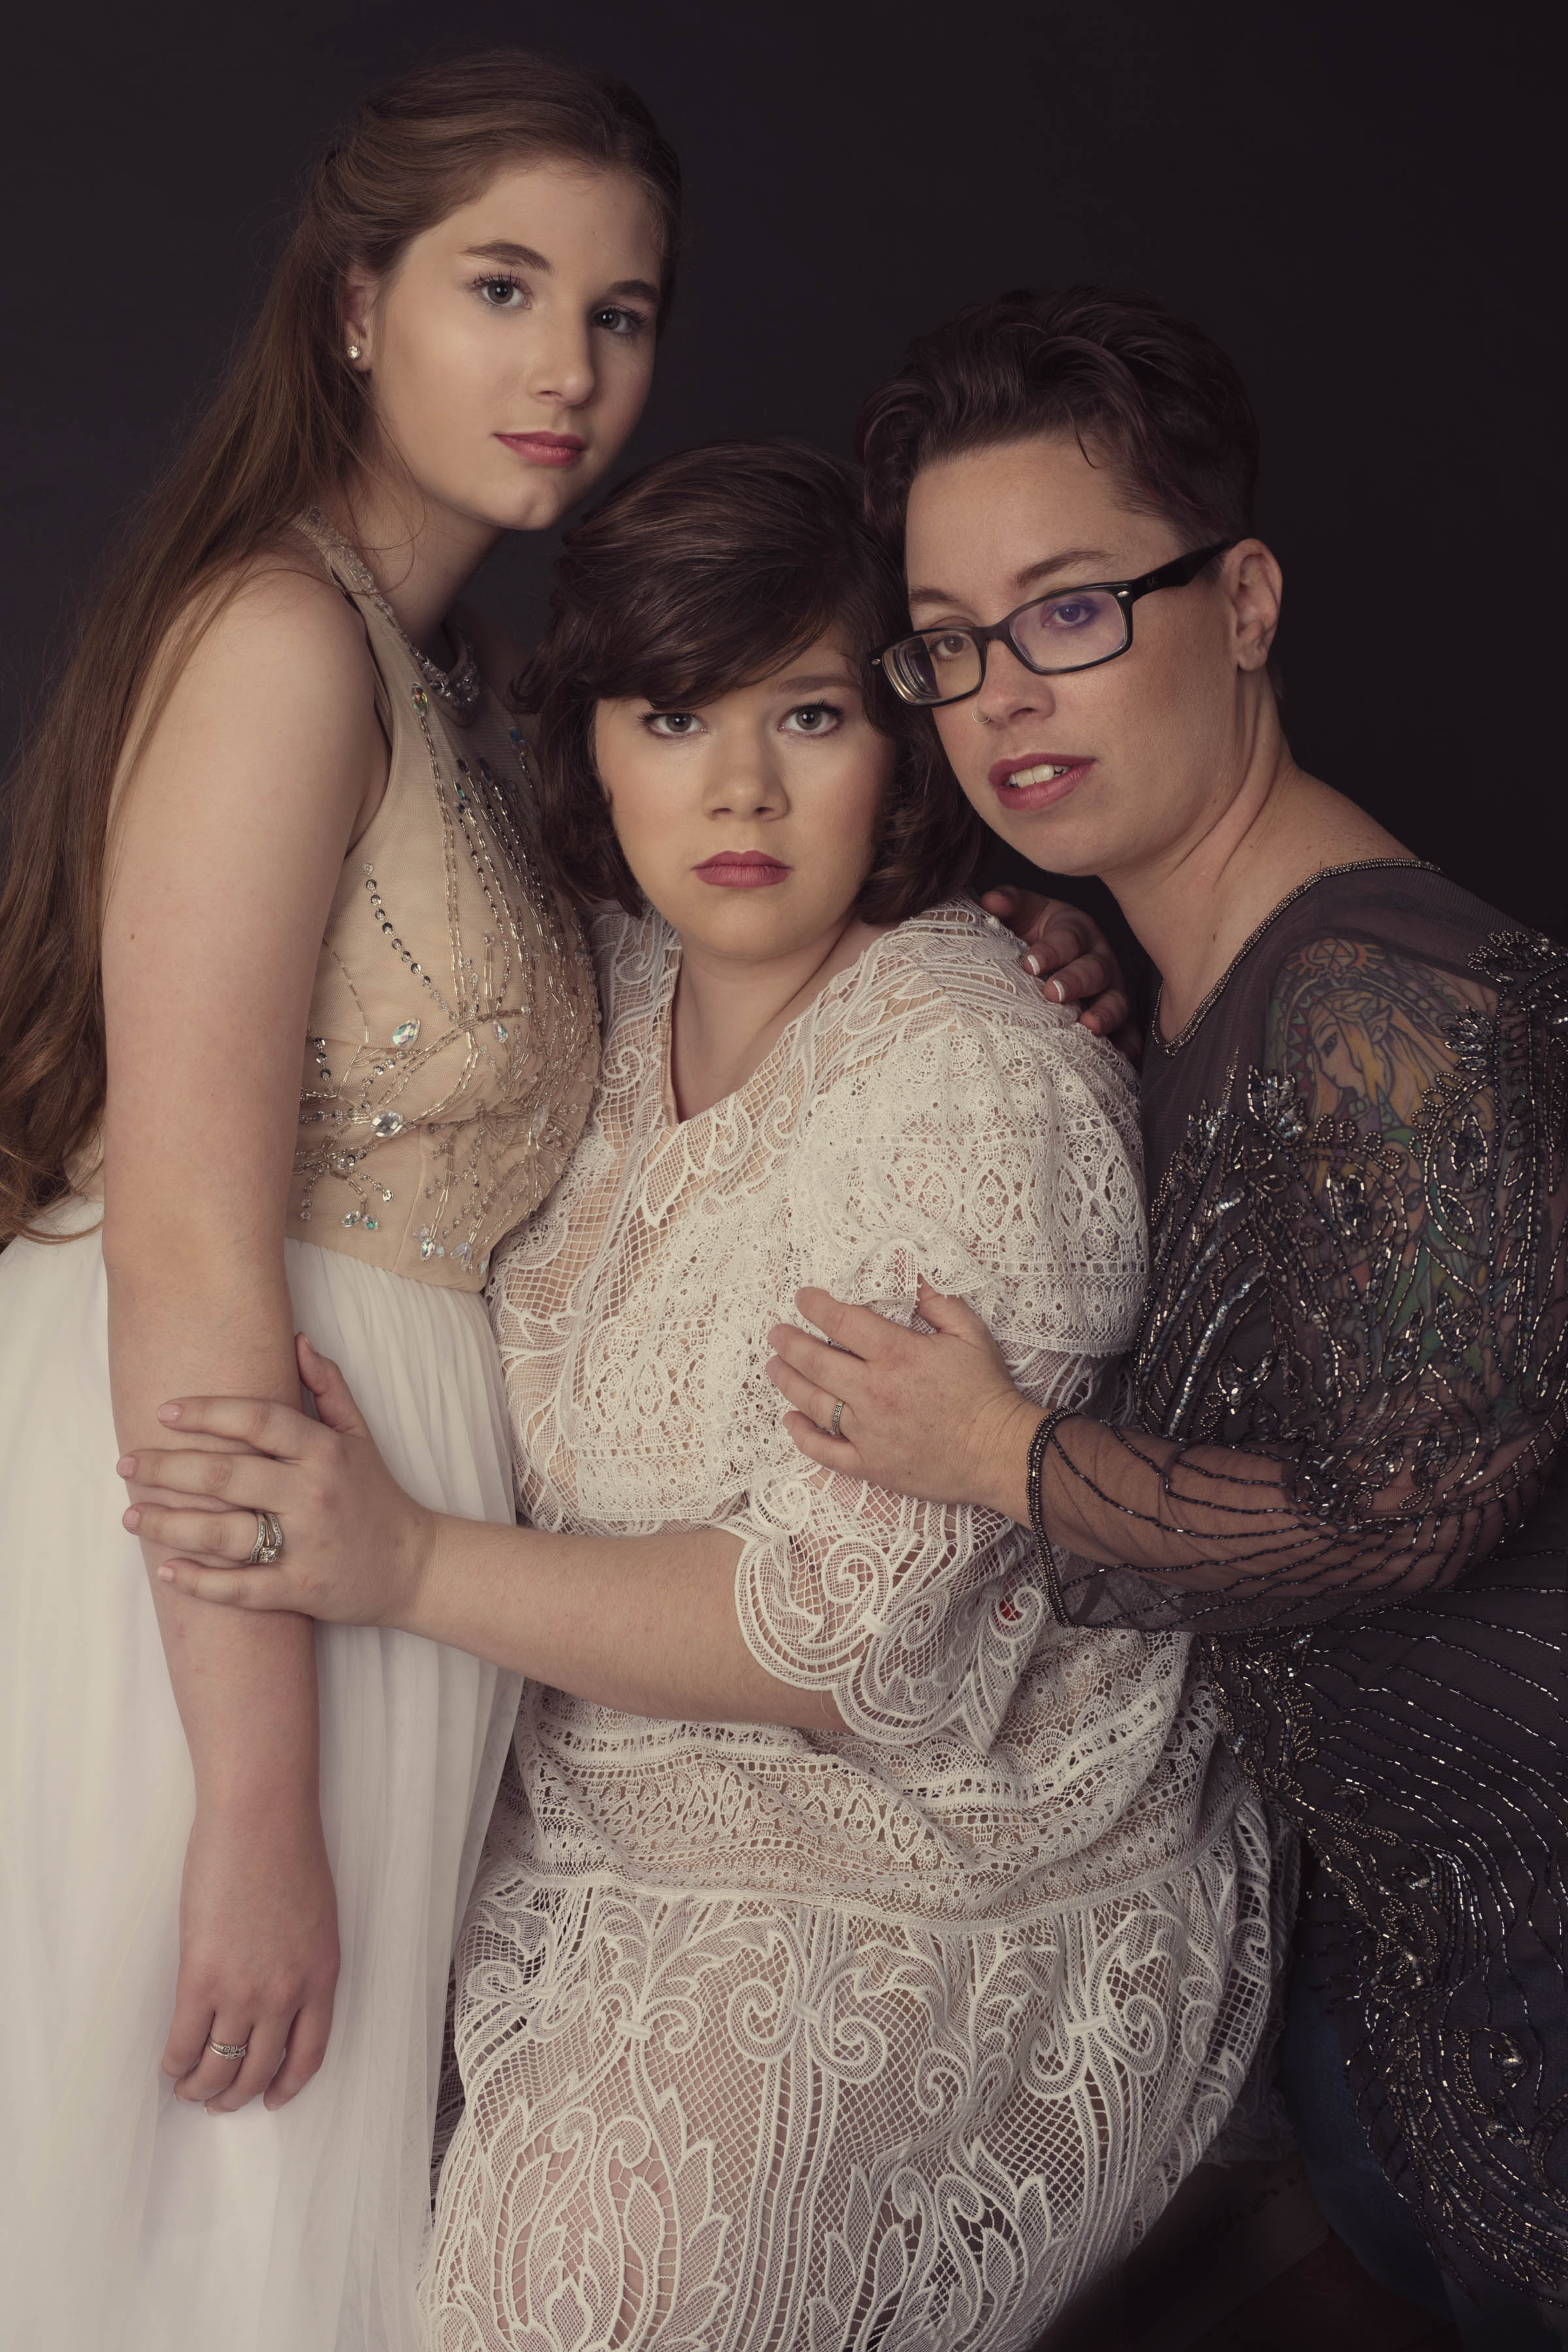 portrait of sisters-photography in Wnc-studio 828 photography